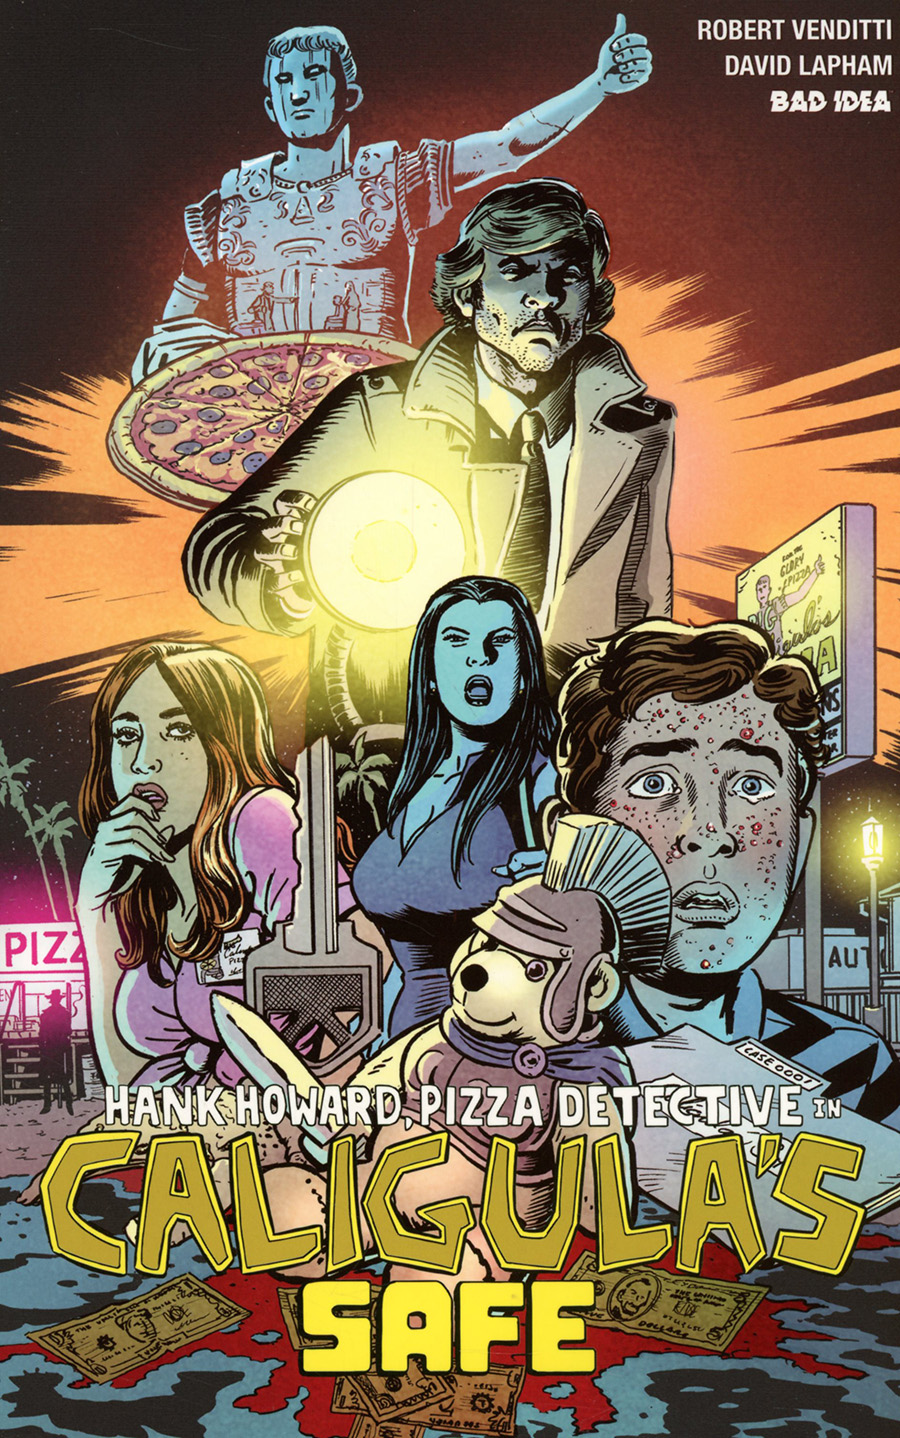 Hank Howard Pizza Detective In Caligulas Safe #1 (One Shot)(Limit 1 Per Customer)